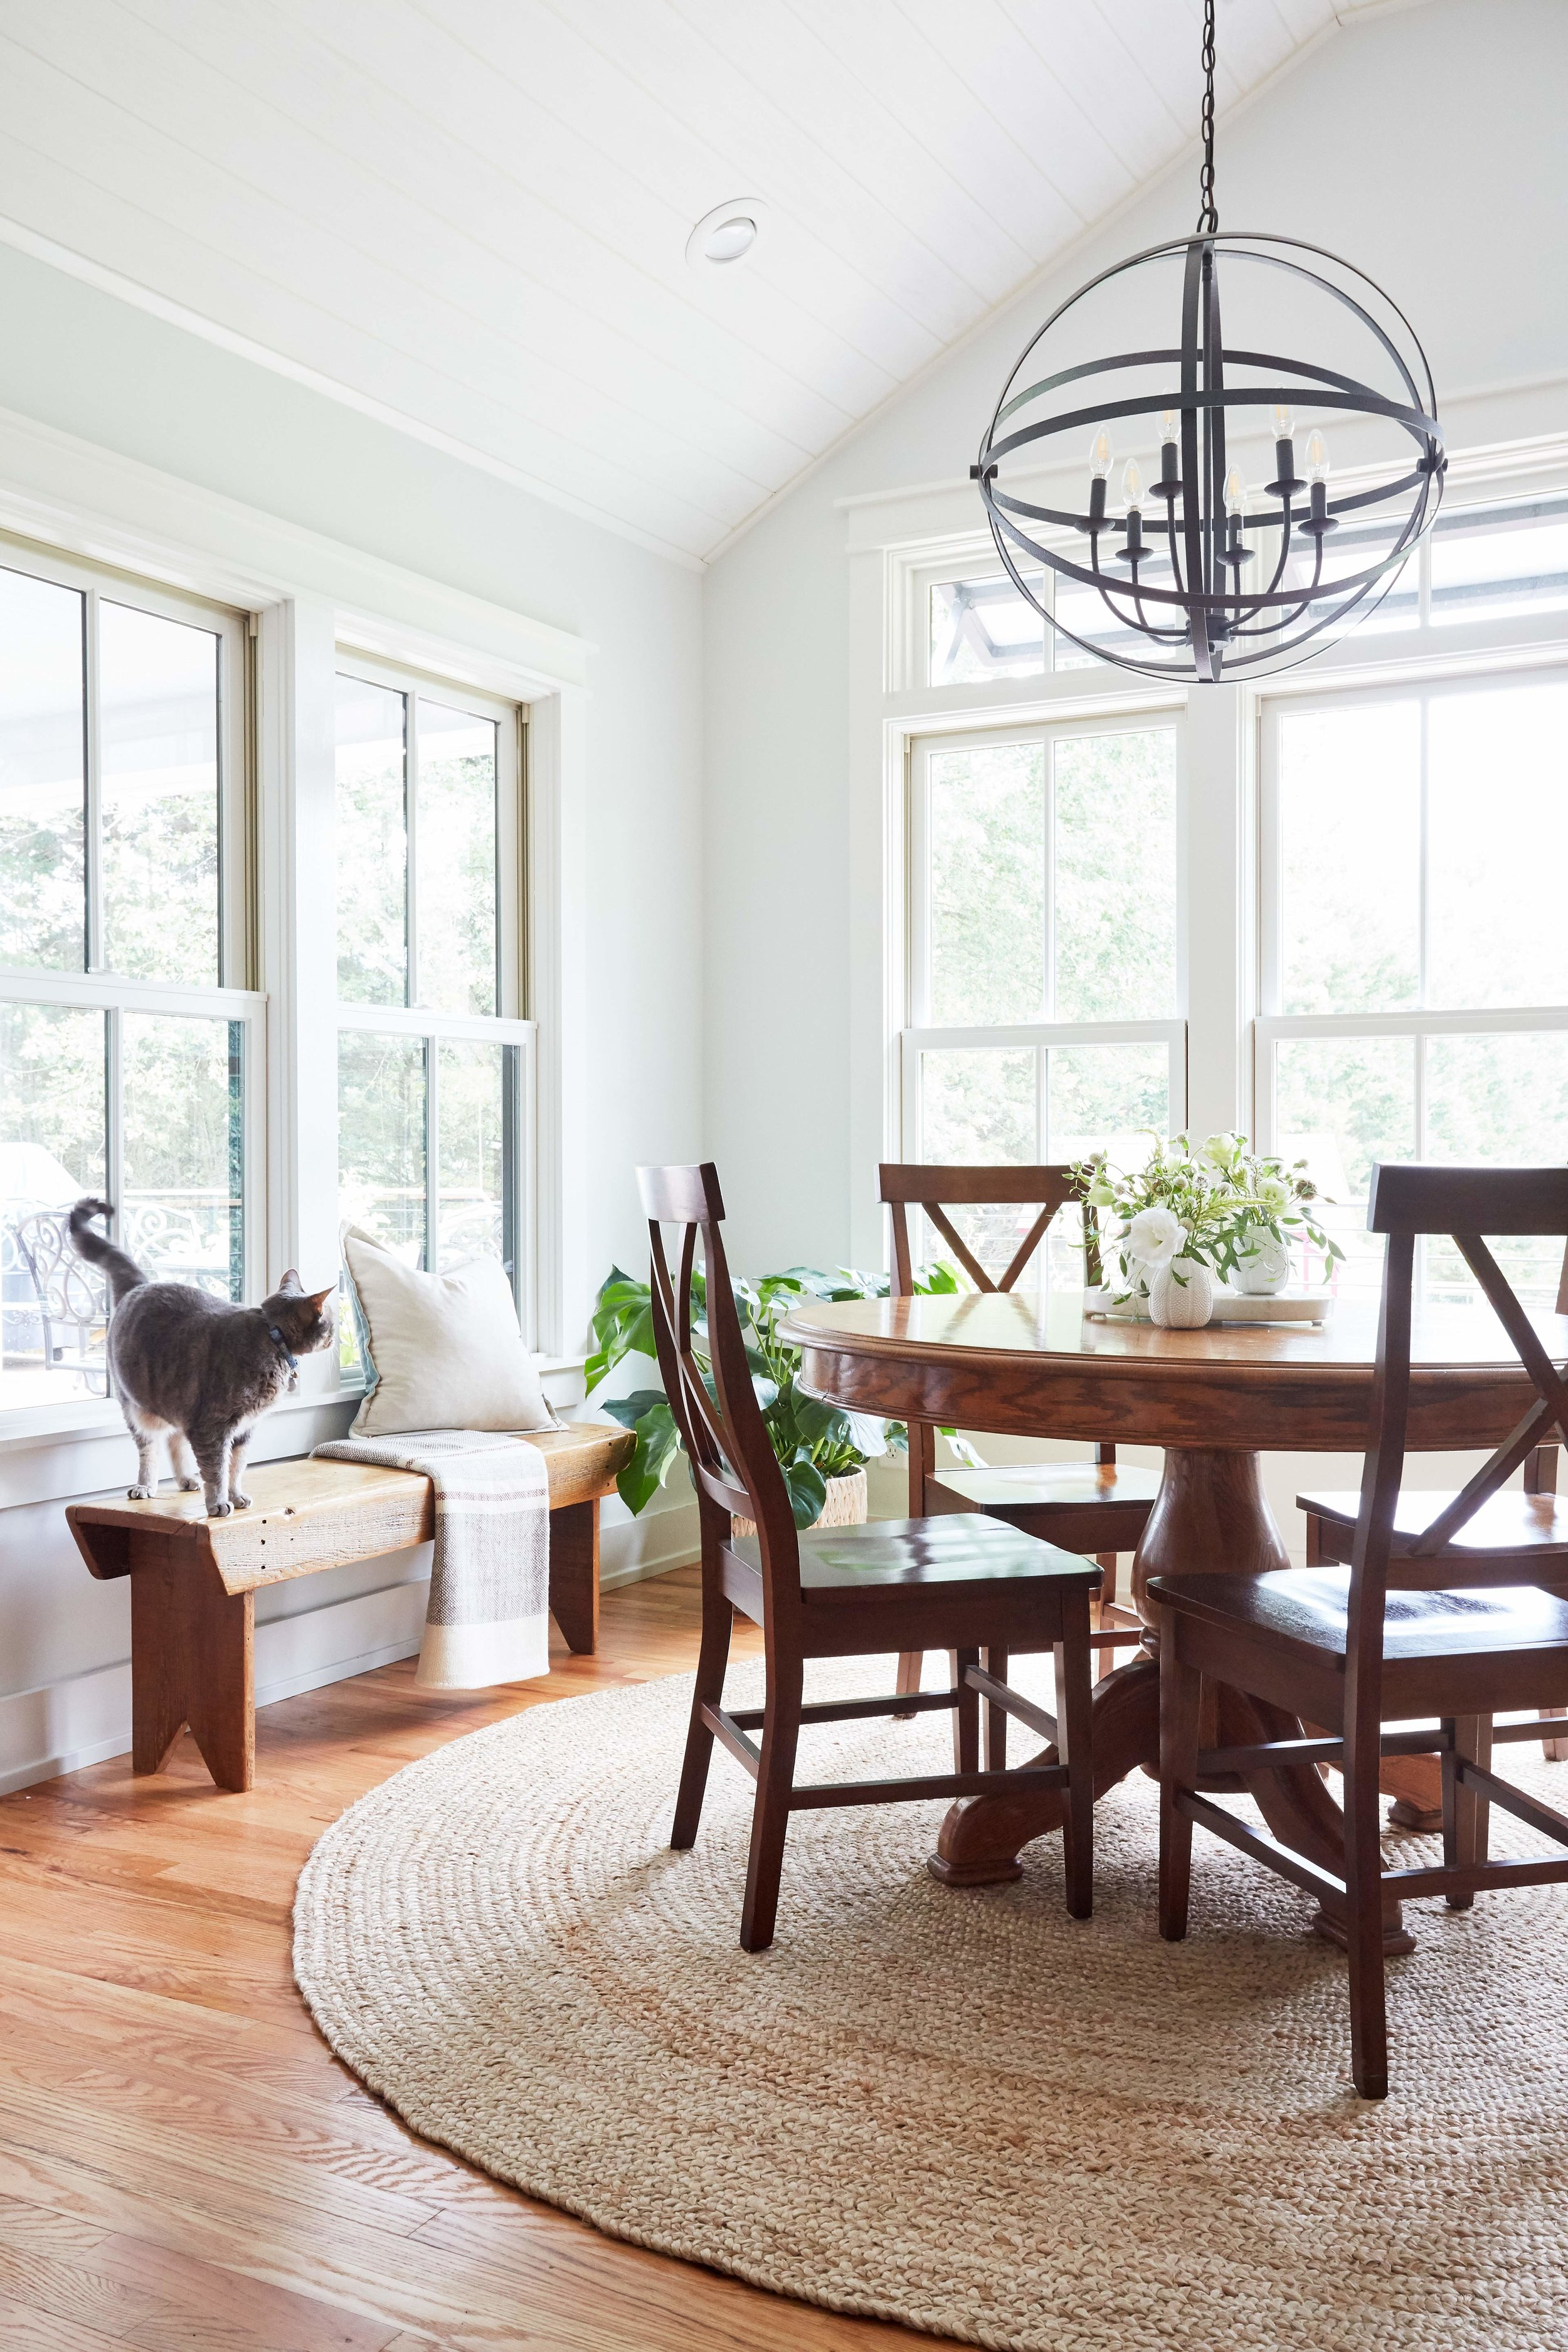 Dining room with redesigned windows and new shiplap ceiling.